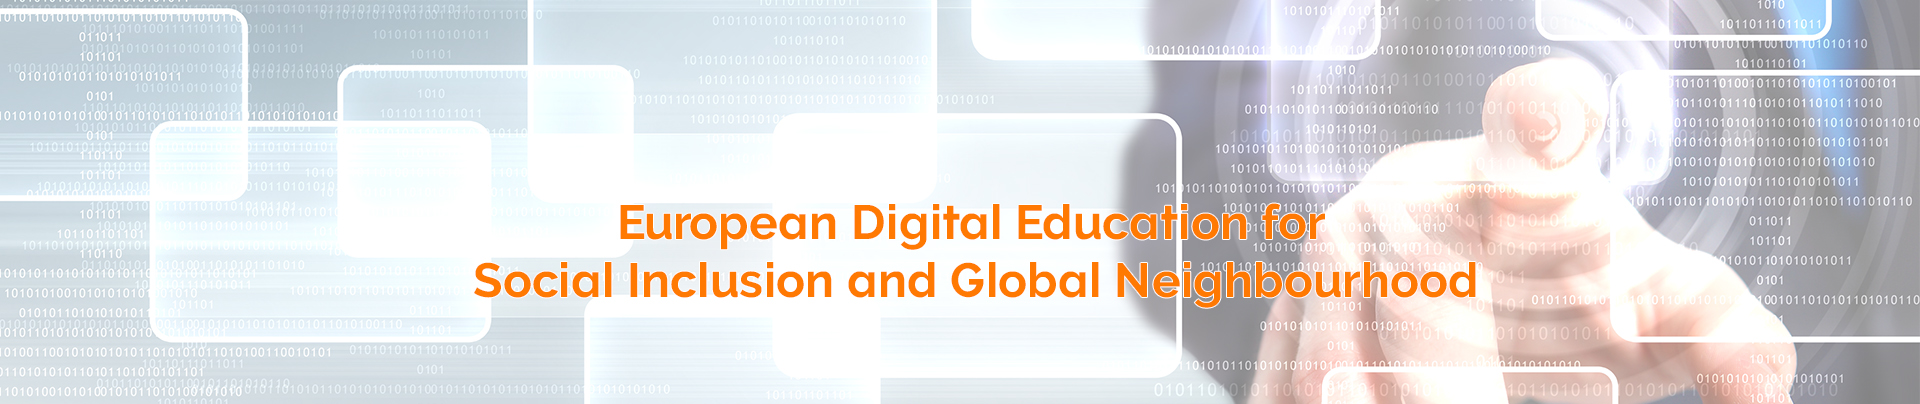 European Digital Education